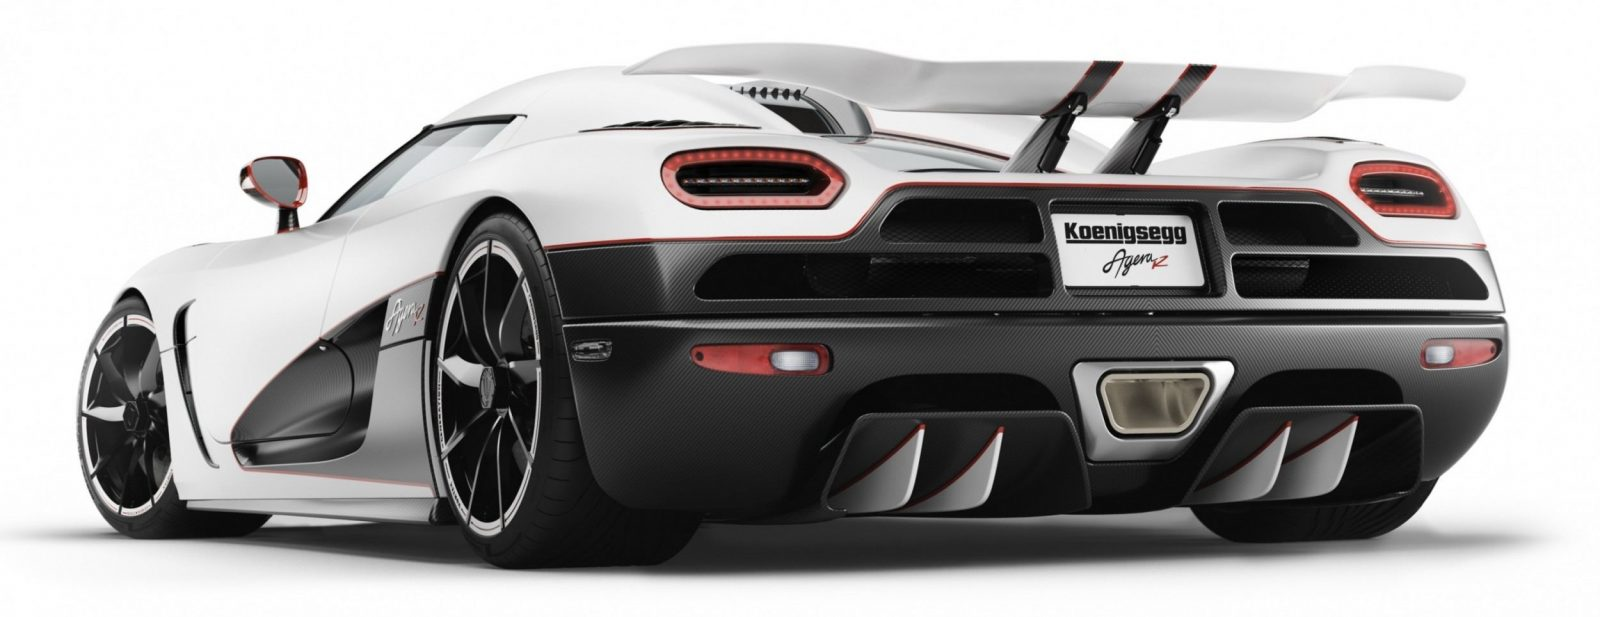 Koenigsegg Agera R Adds 240HP for Potential 280MPH Vmax of Generva-bound One1 Edition22